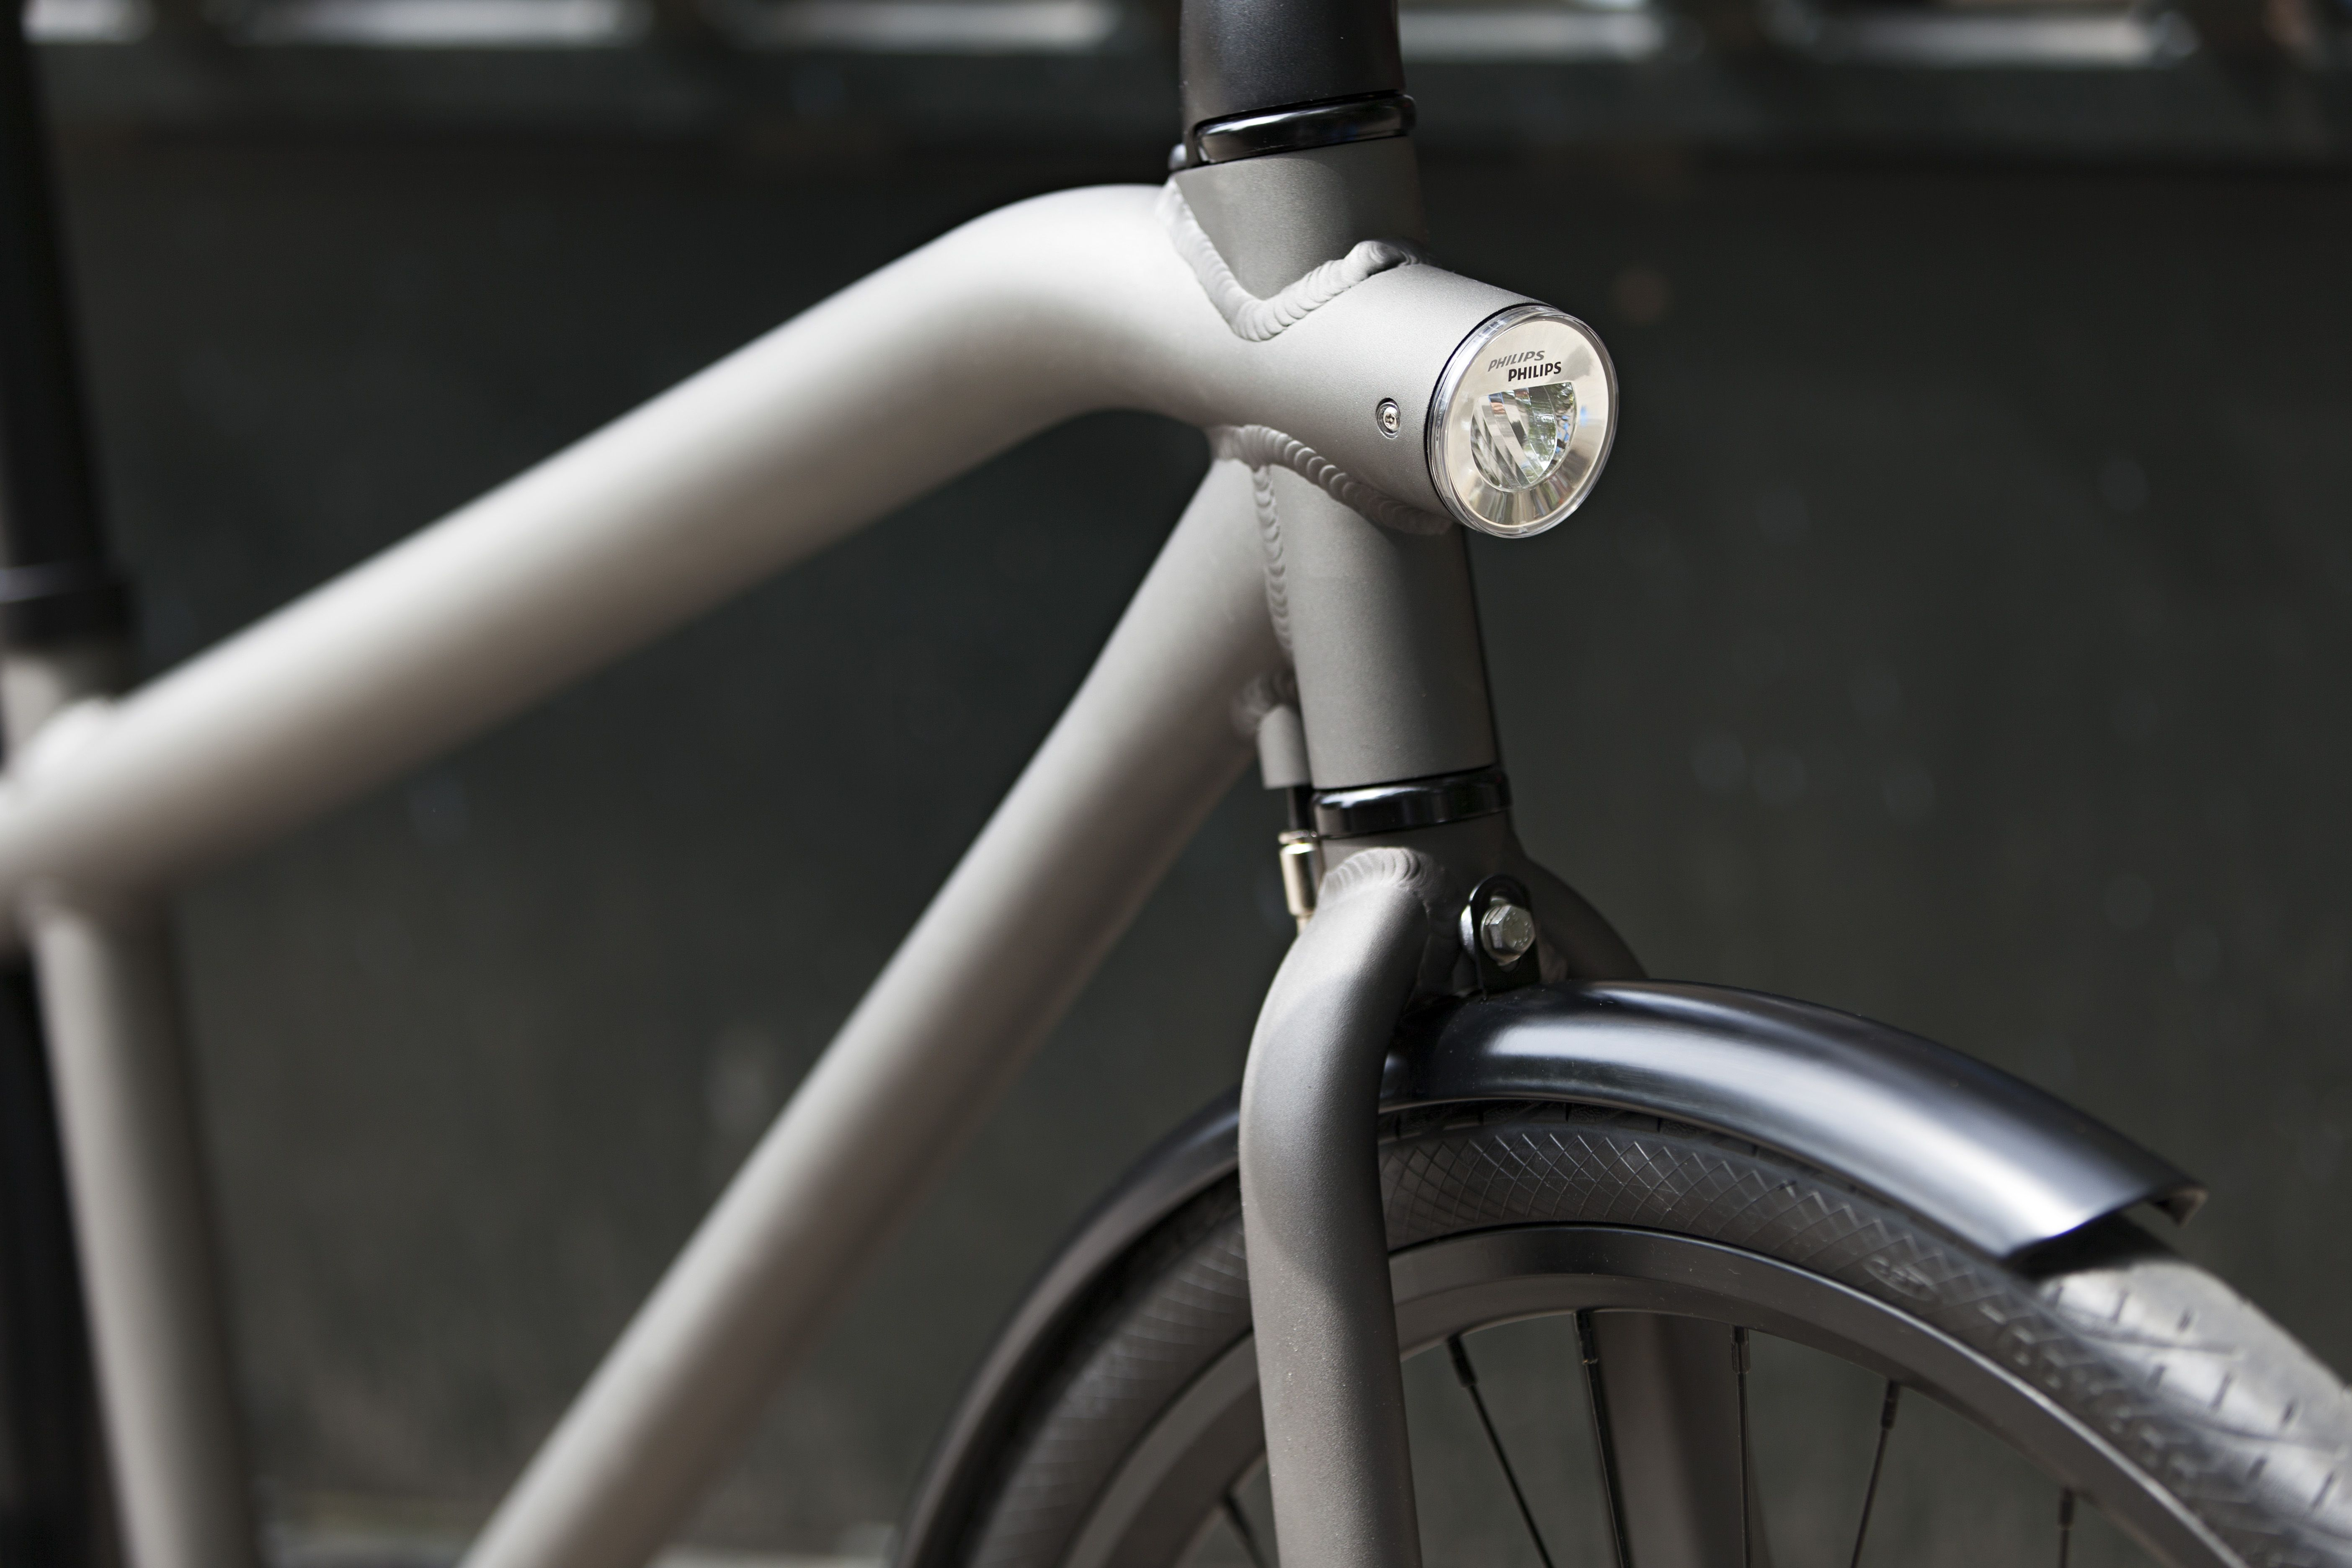 VANMOOF S Series Step Through Frame Philips Front Light